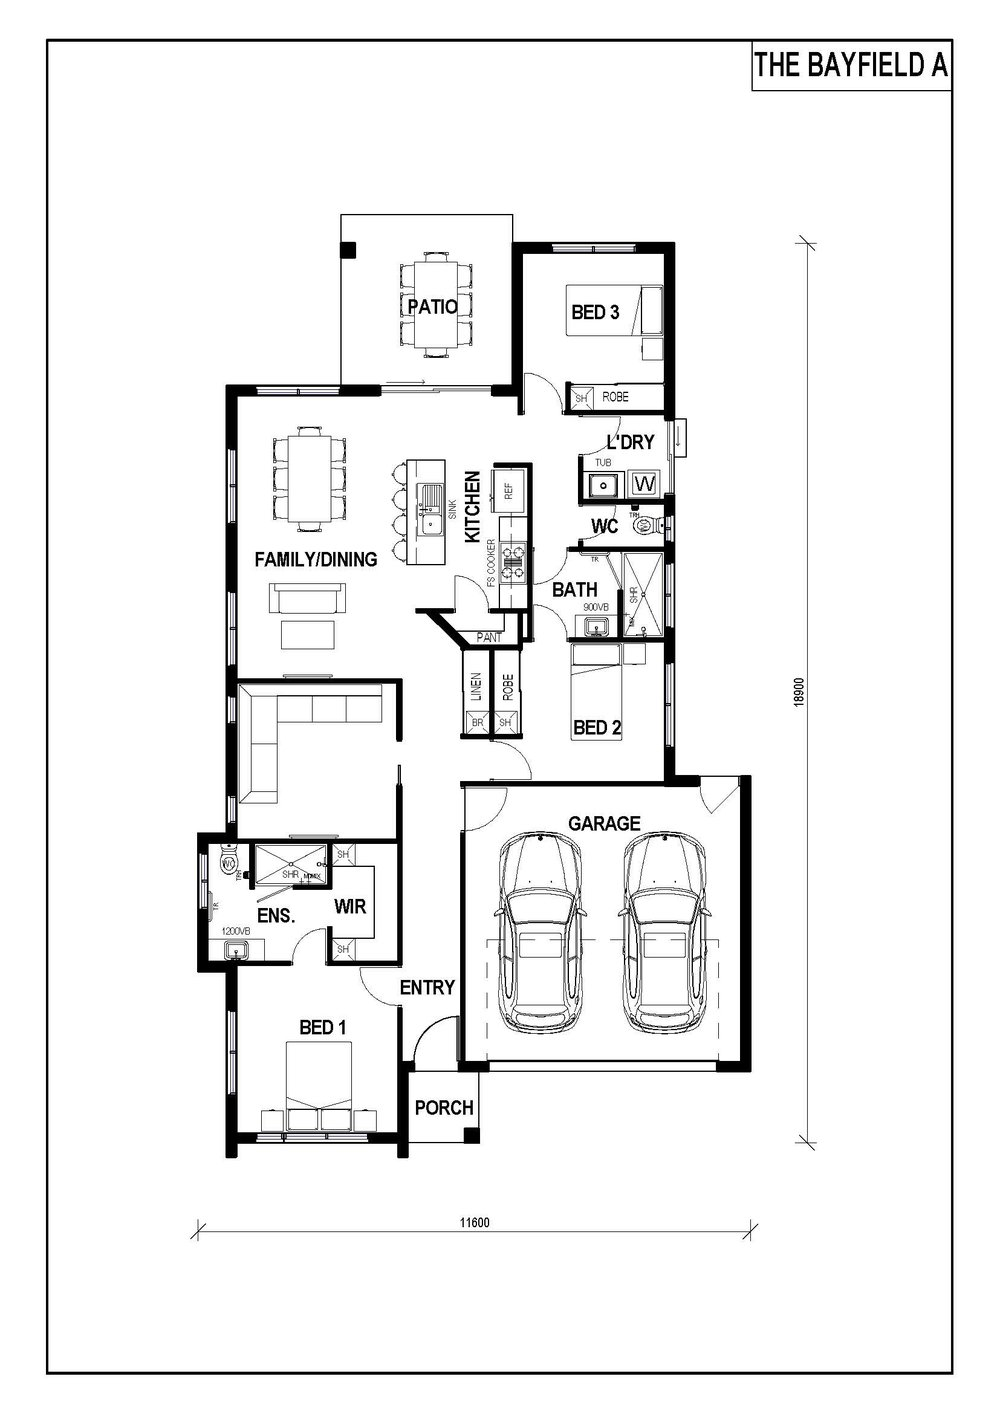 BAYFIELD A - Floor Plan.jpg